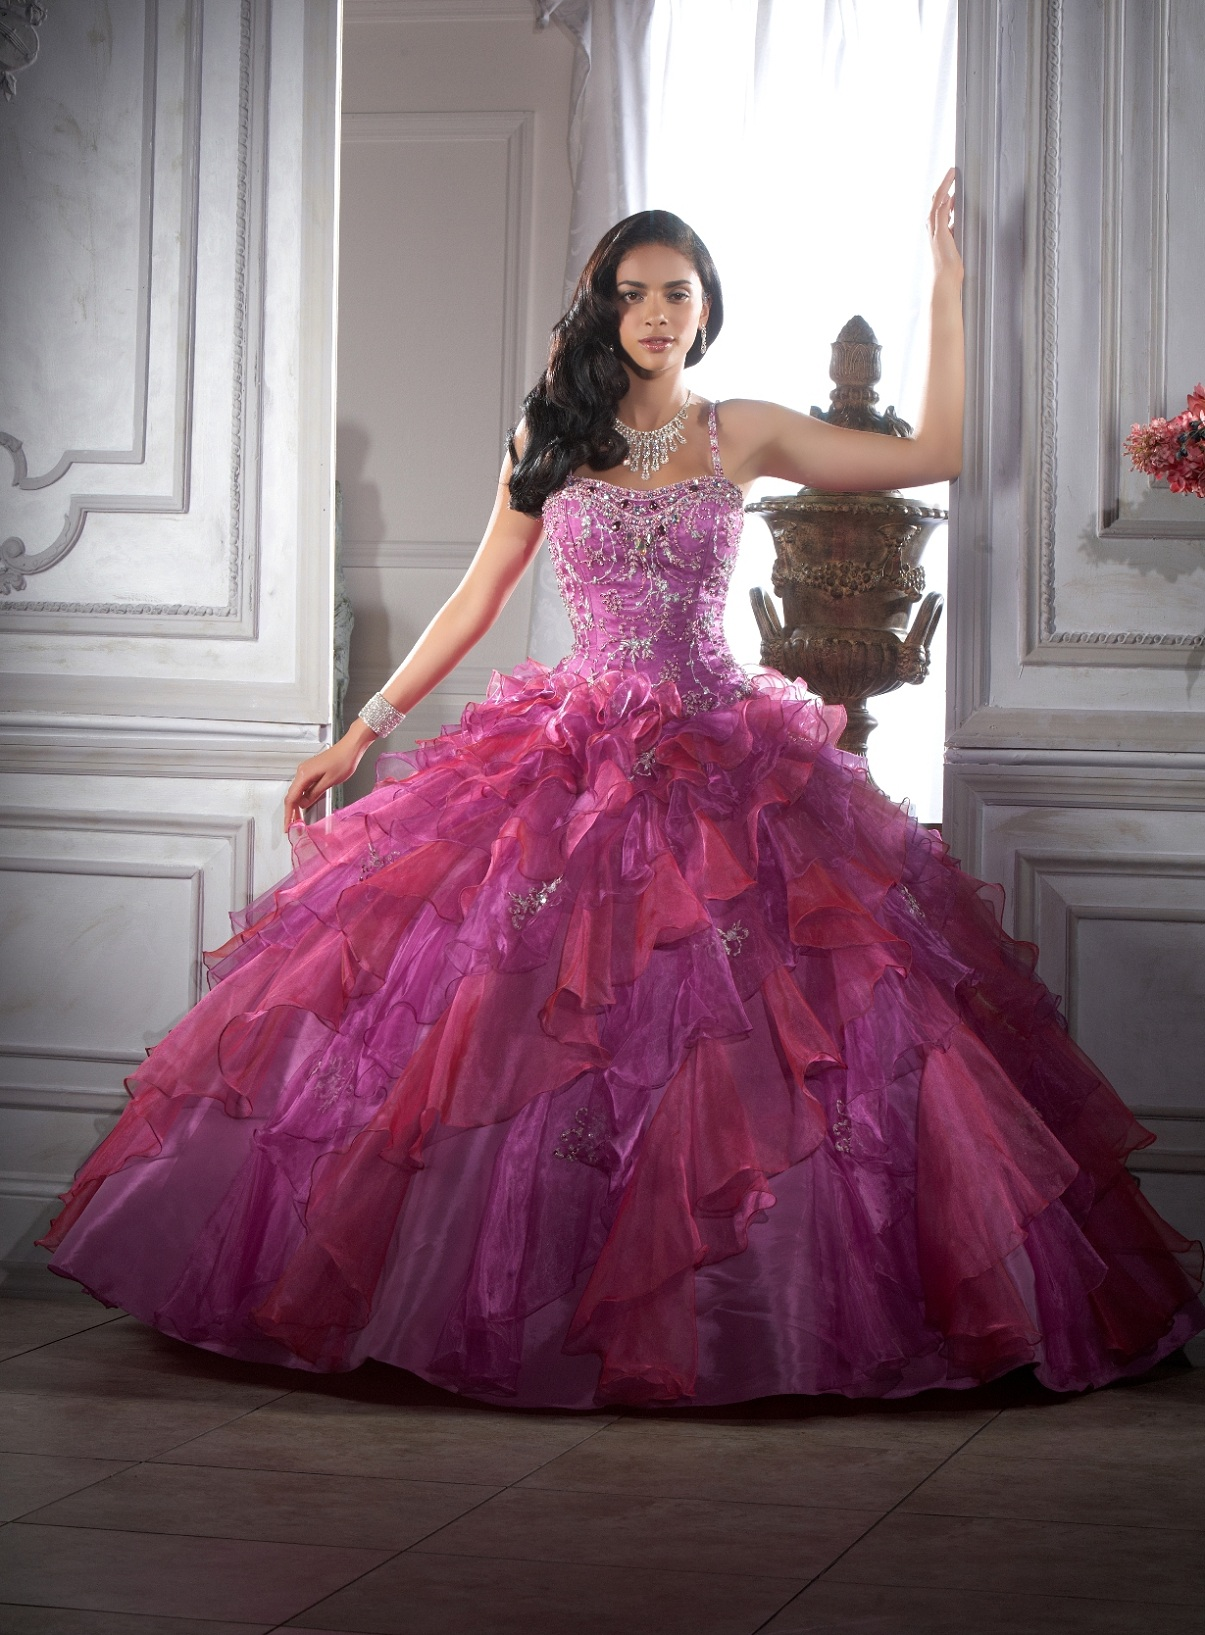 House of Wu Quinceanera Dresses in Dallas Texas